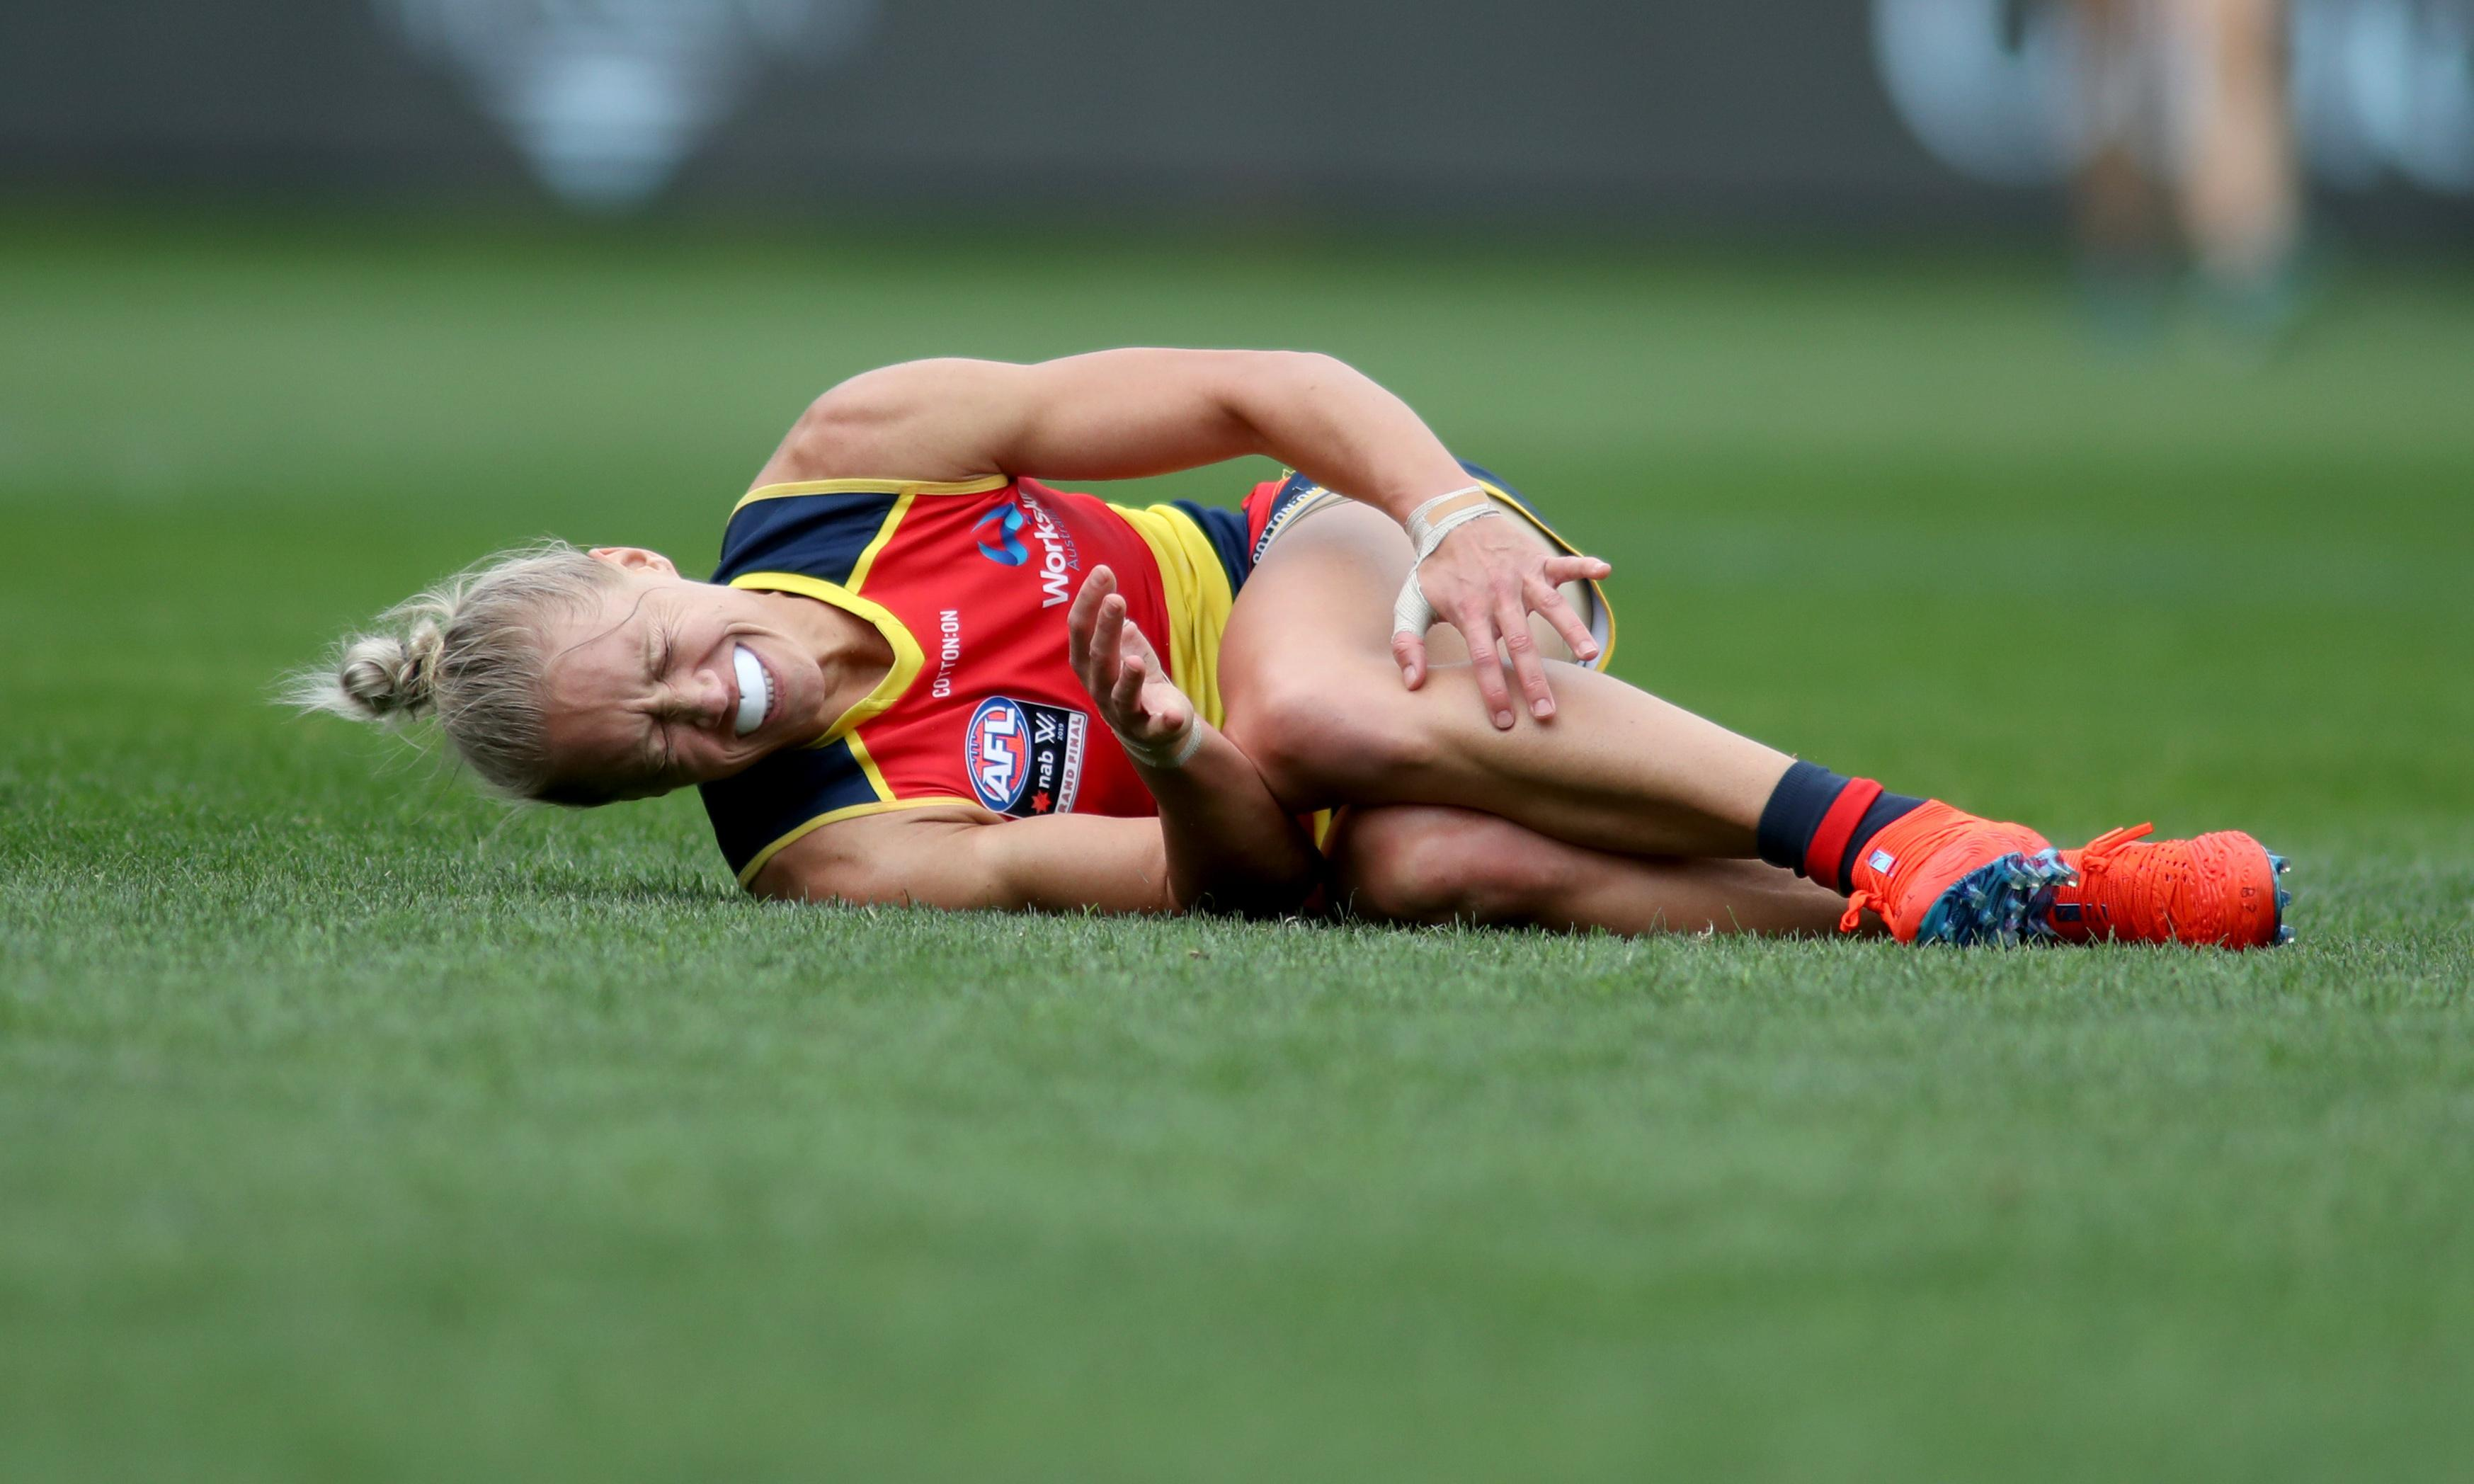 AFLW exploring link between player injuries and the menstrual cycle